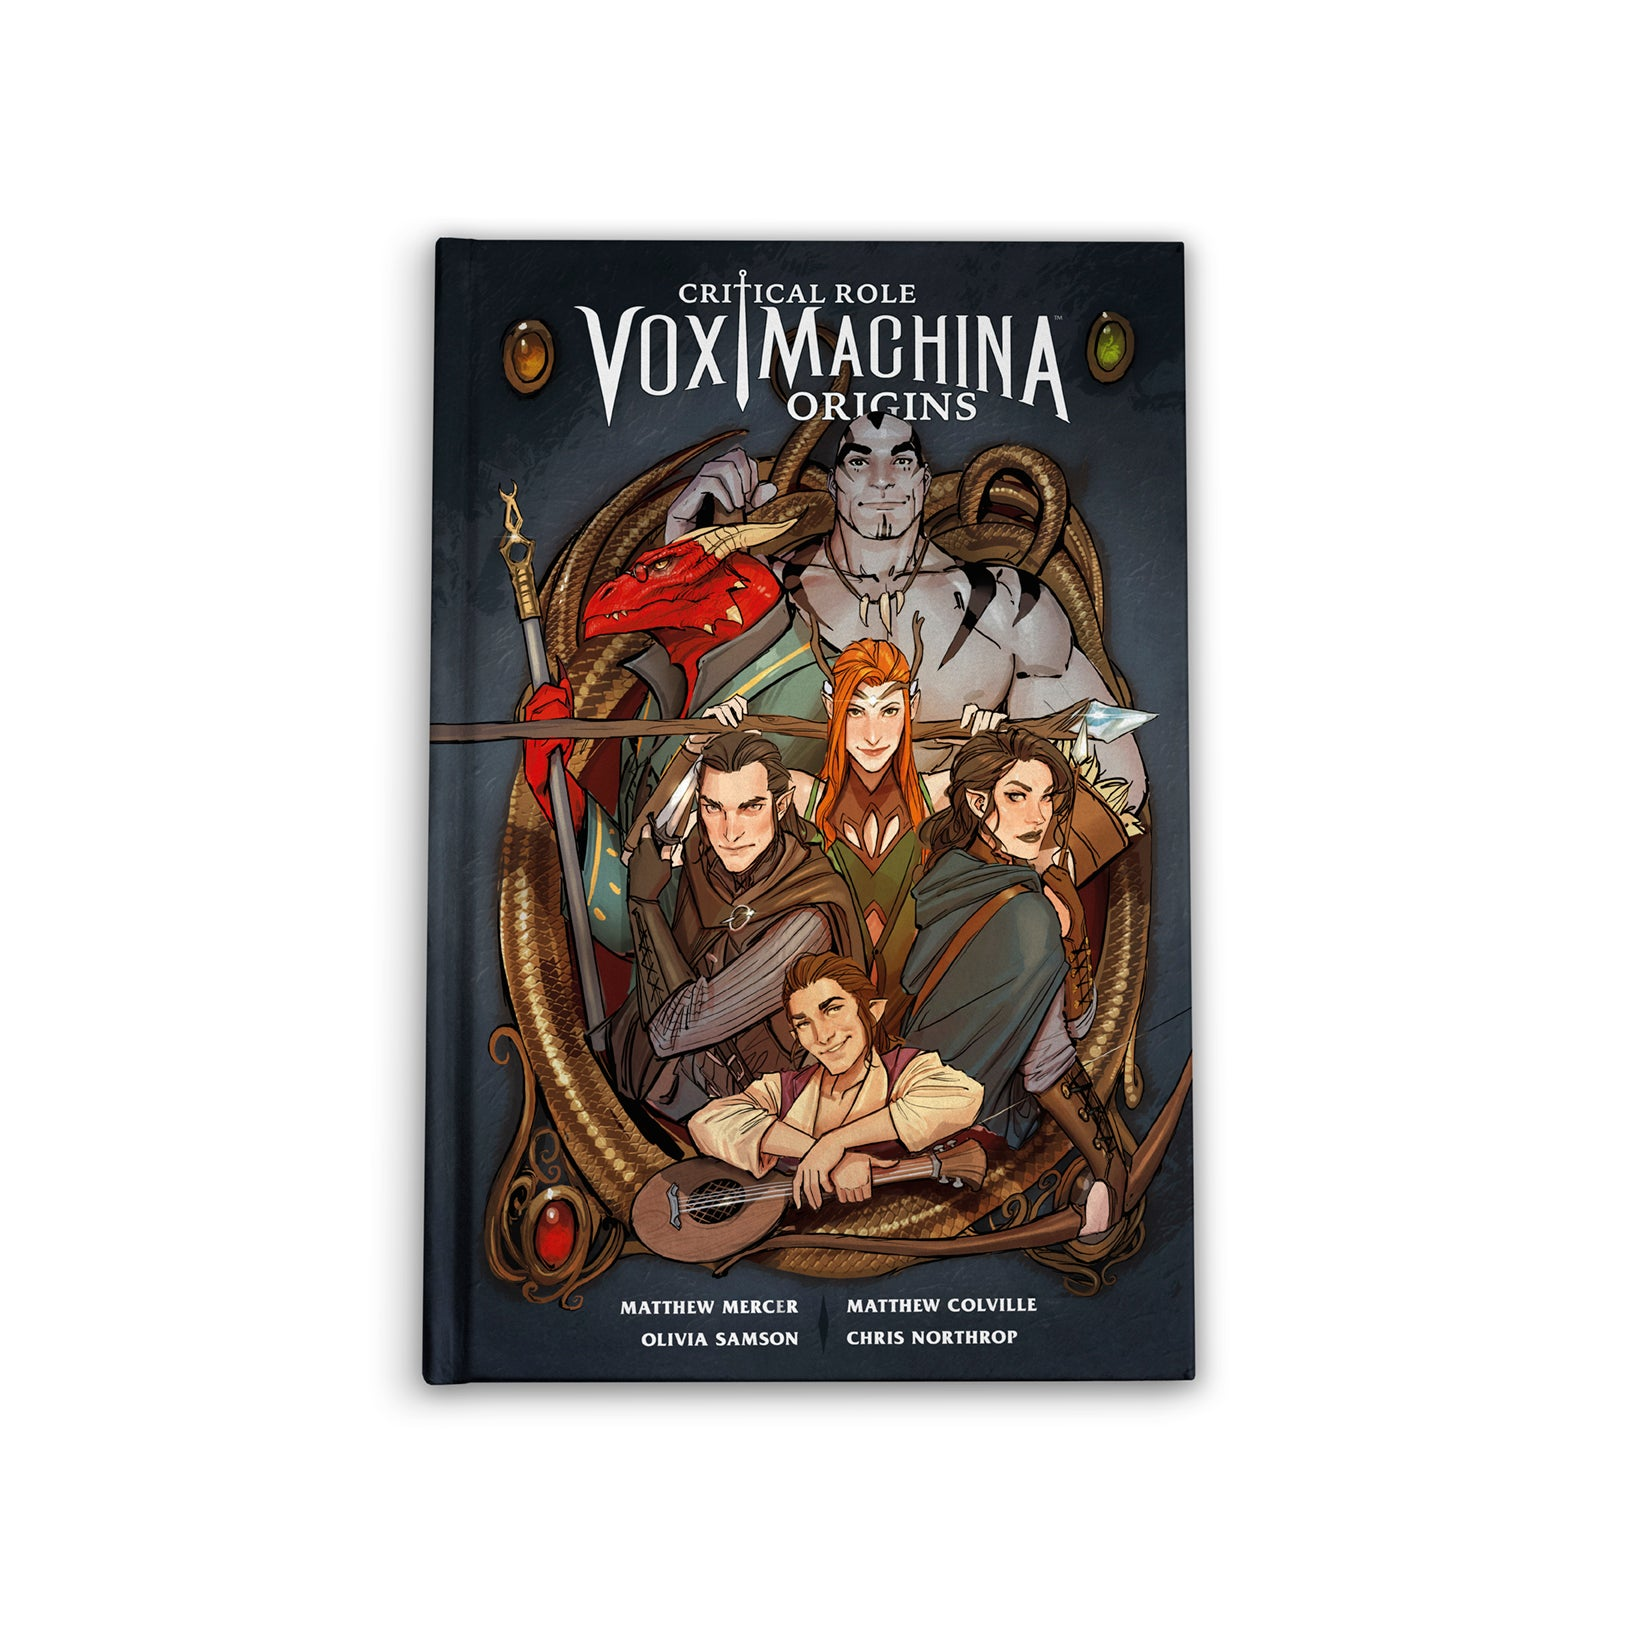 Critical Role Vox Machina Origins Graphic Novel - Standard Edition